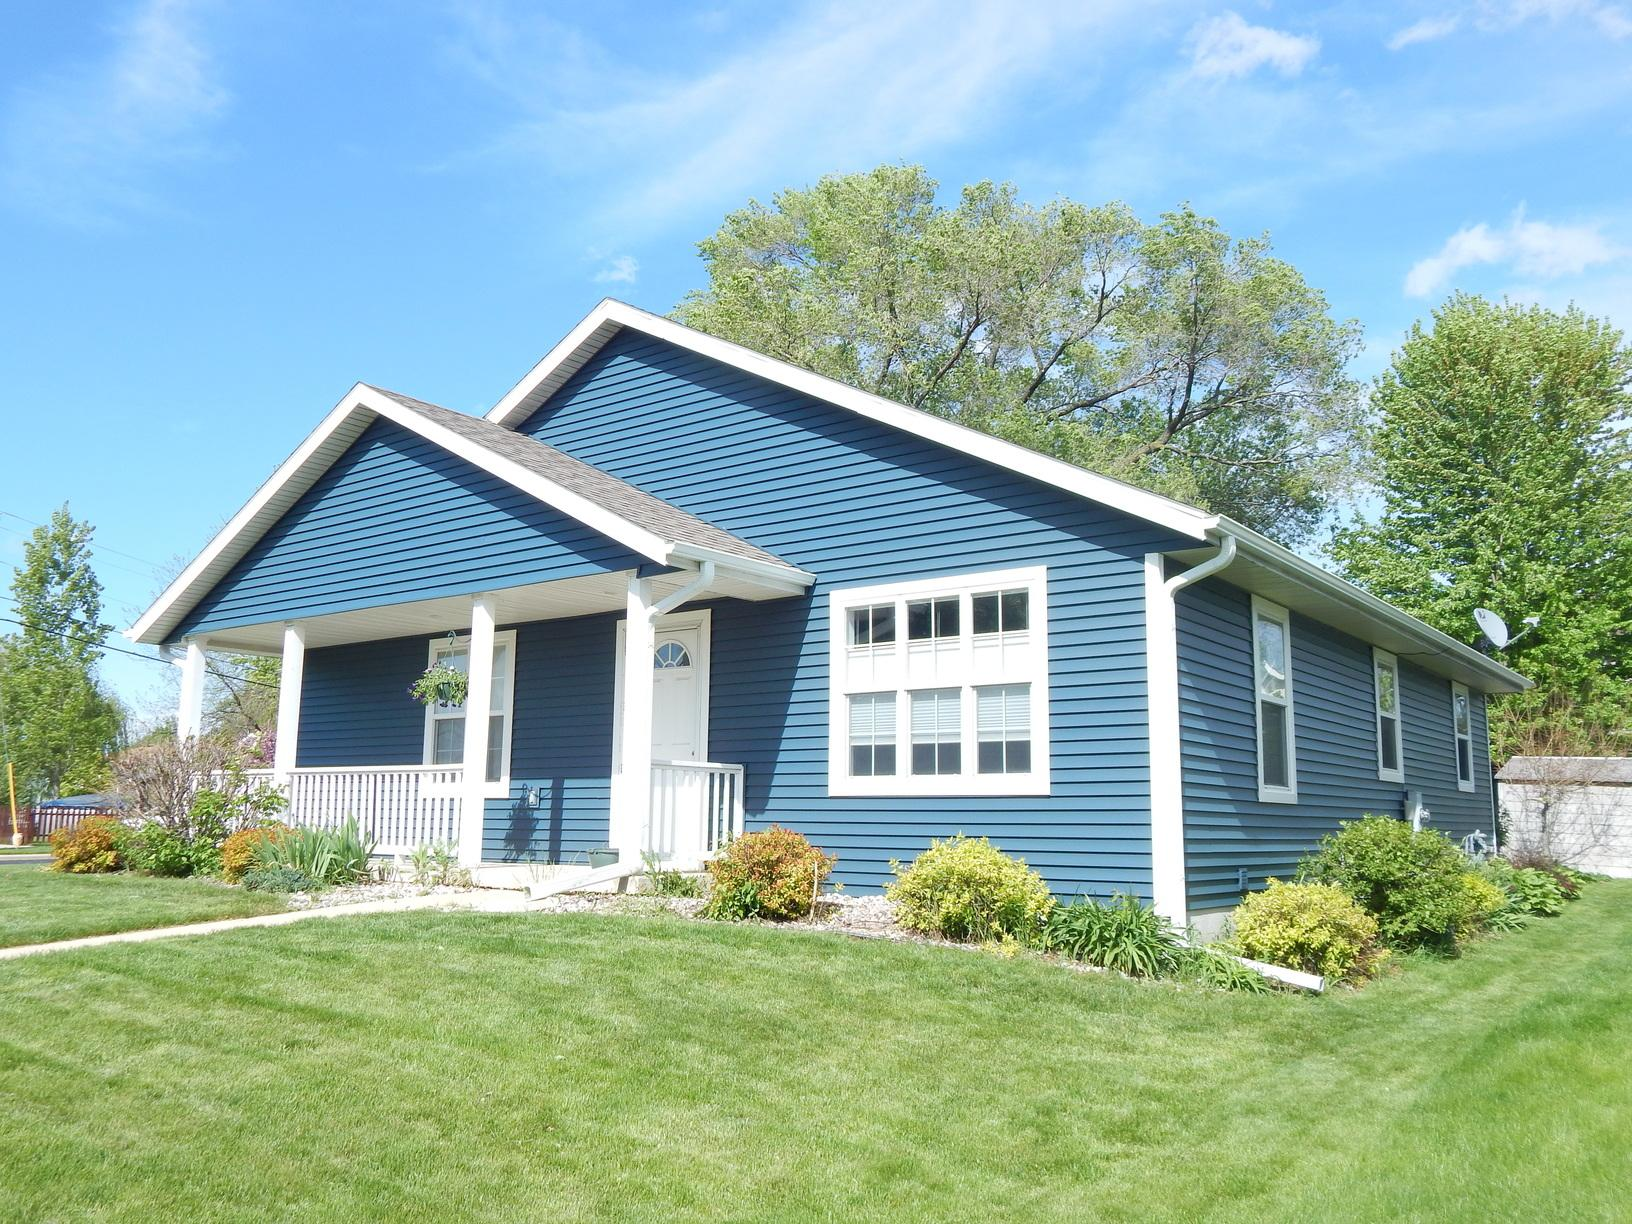 New Siding & Gutters in Madison, WI - After Photo